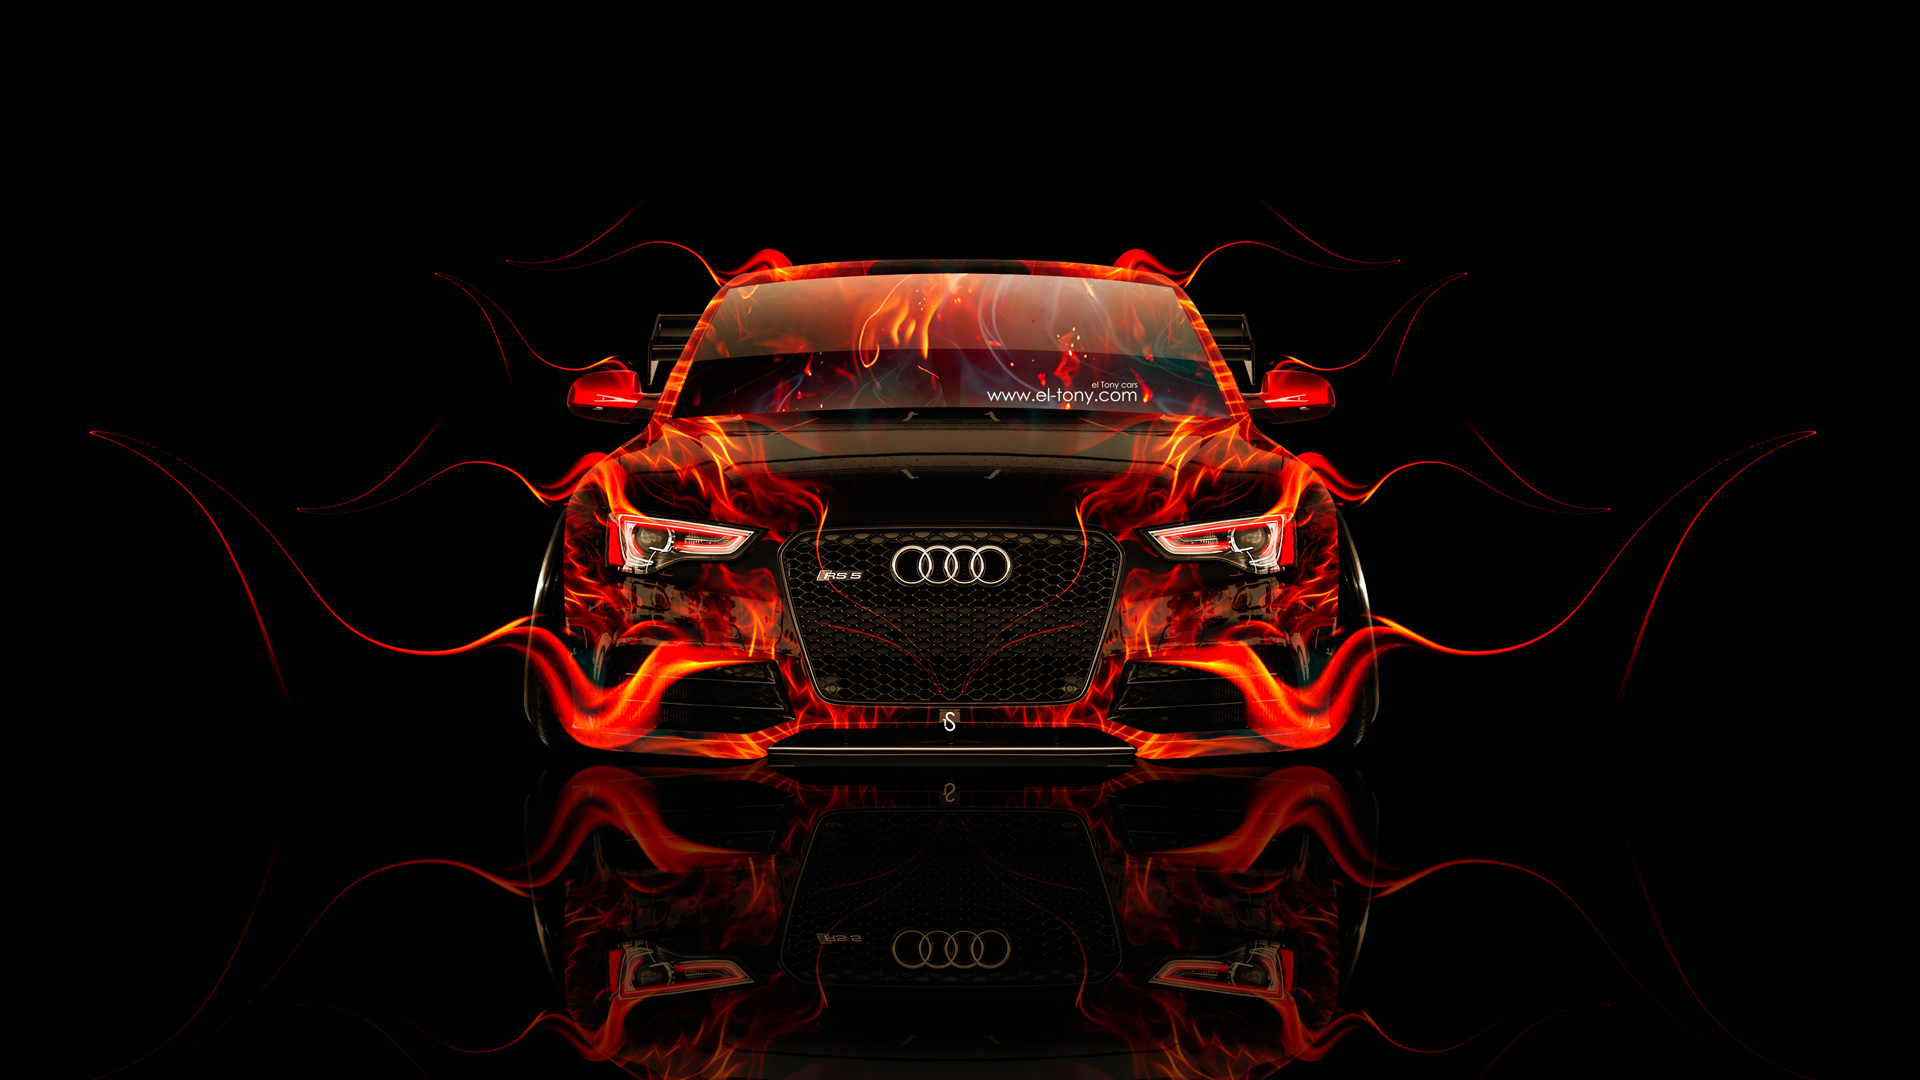 Audi Rs5 Tuning Front Fire Car 2014 El Tony